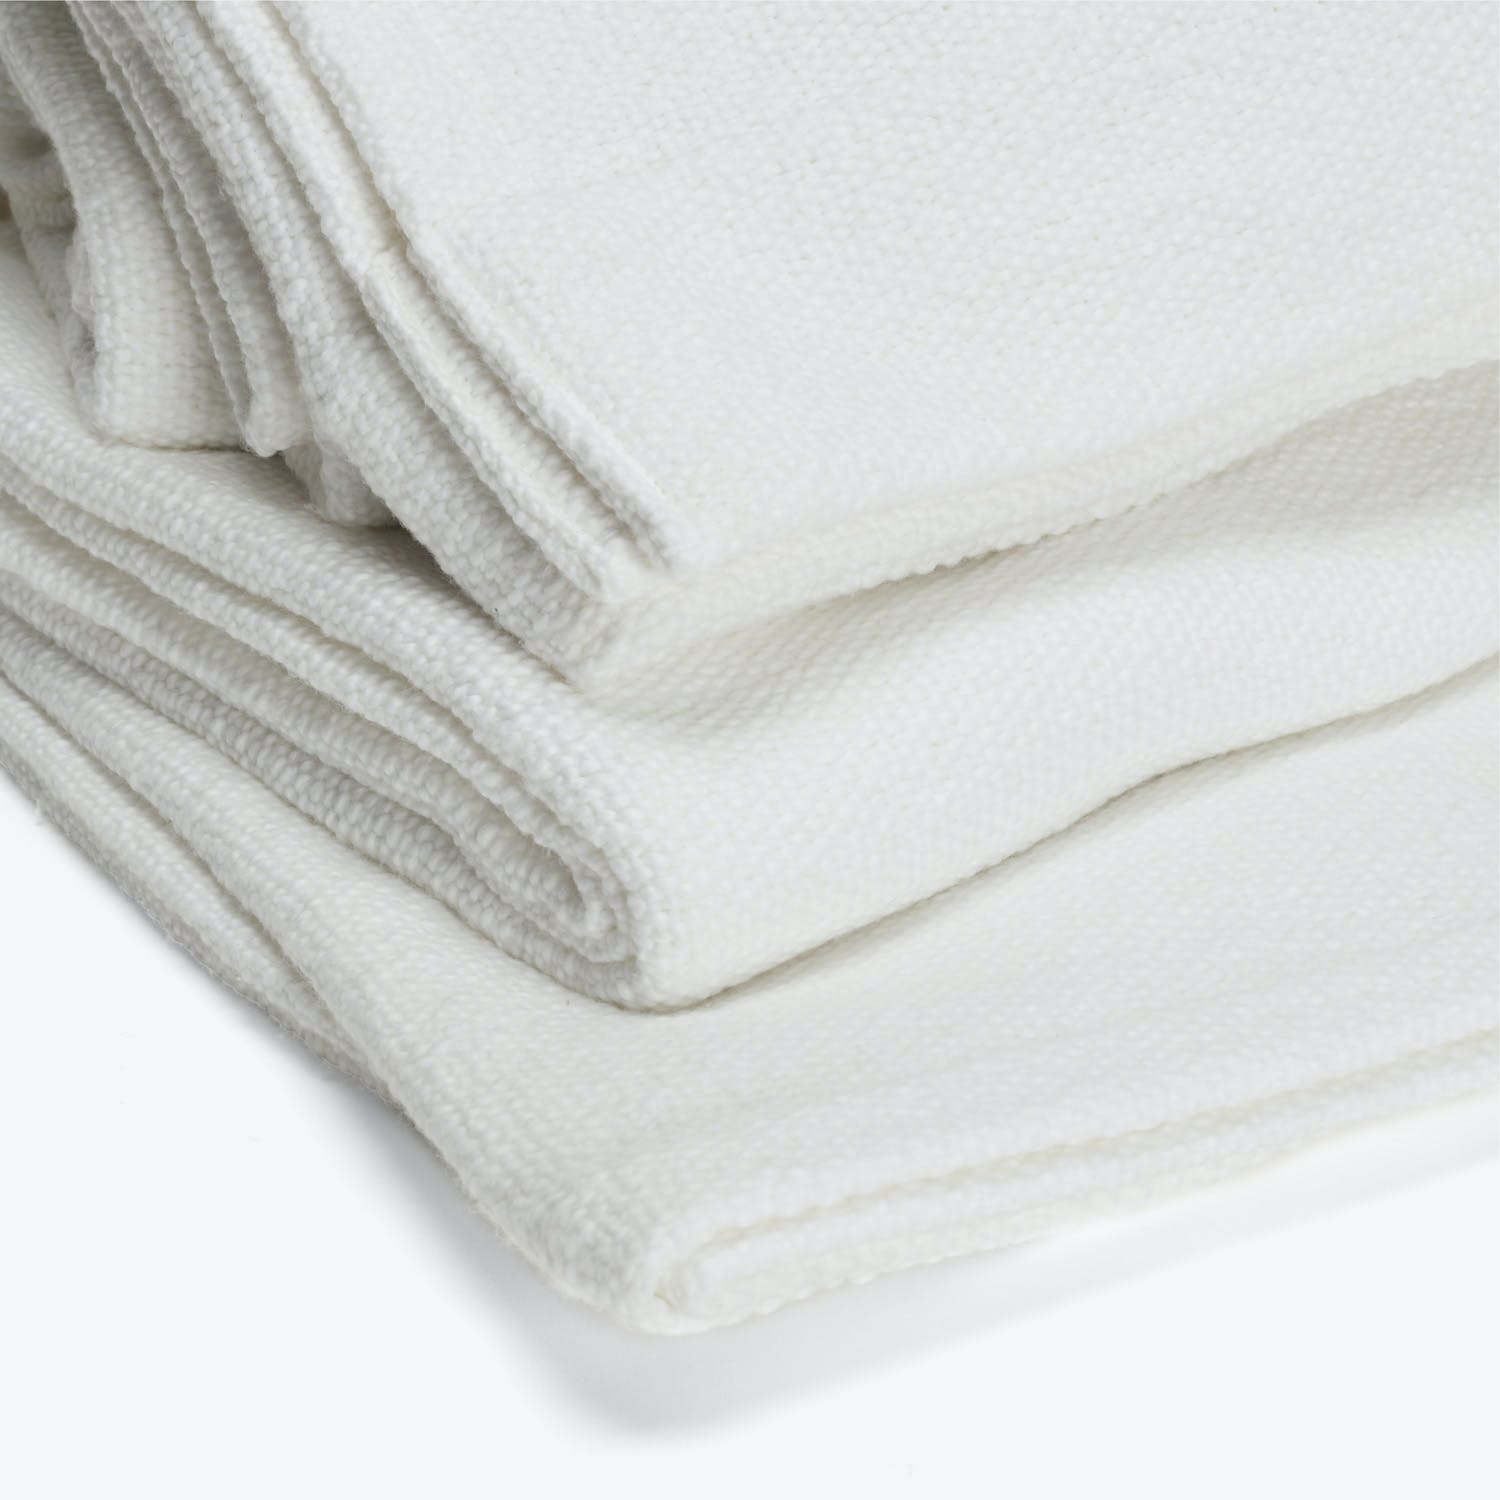 Sefte Mila Woven Cotton Blanket Queen White